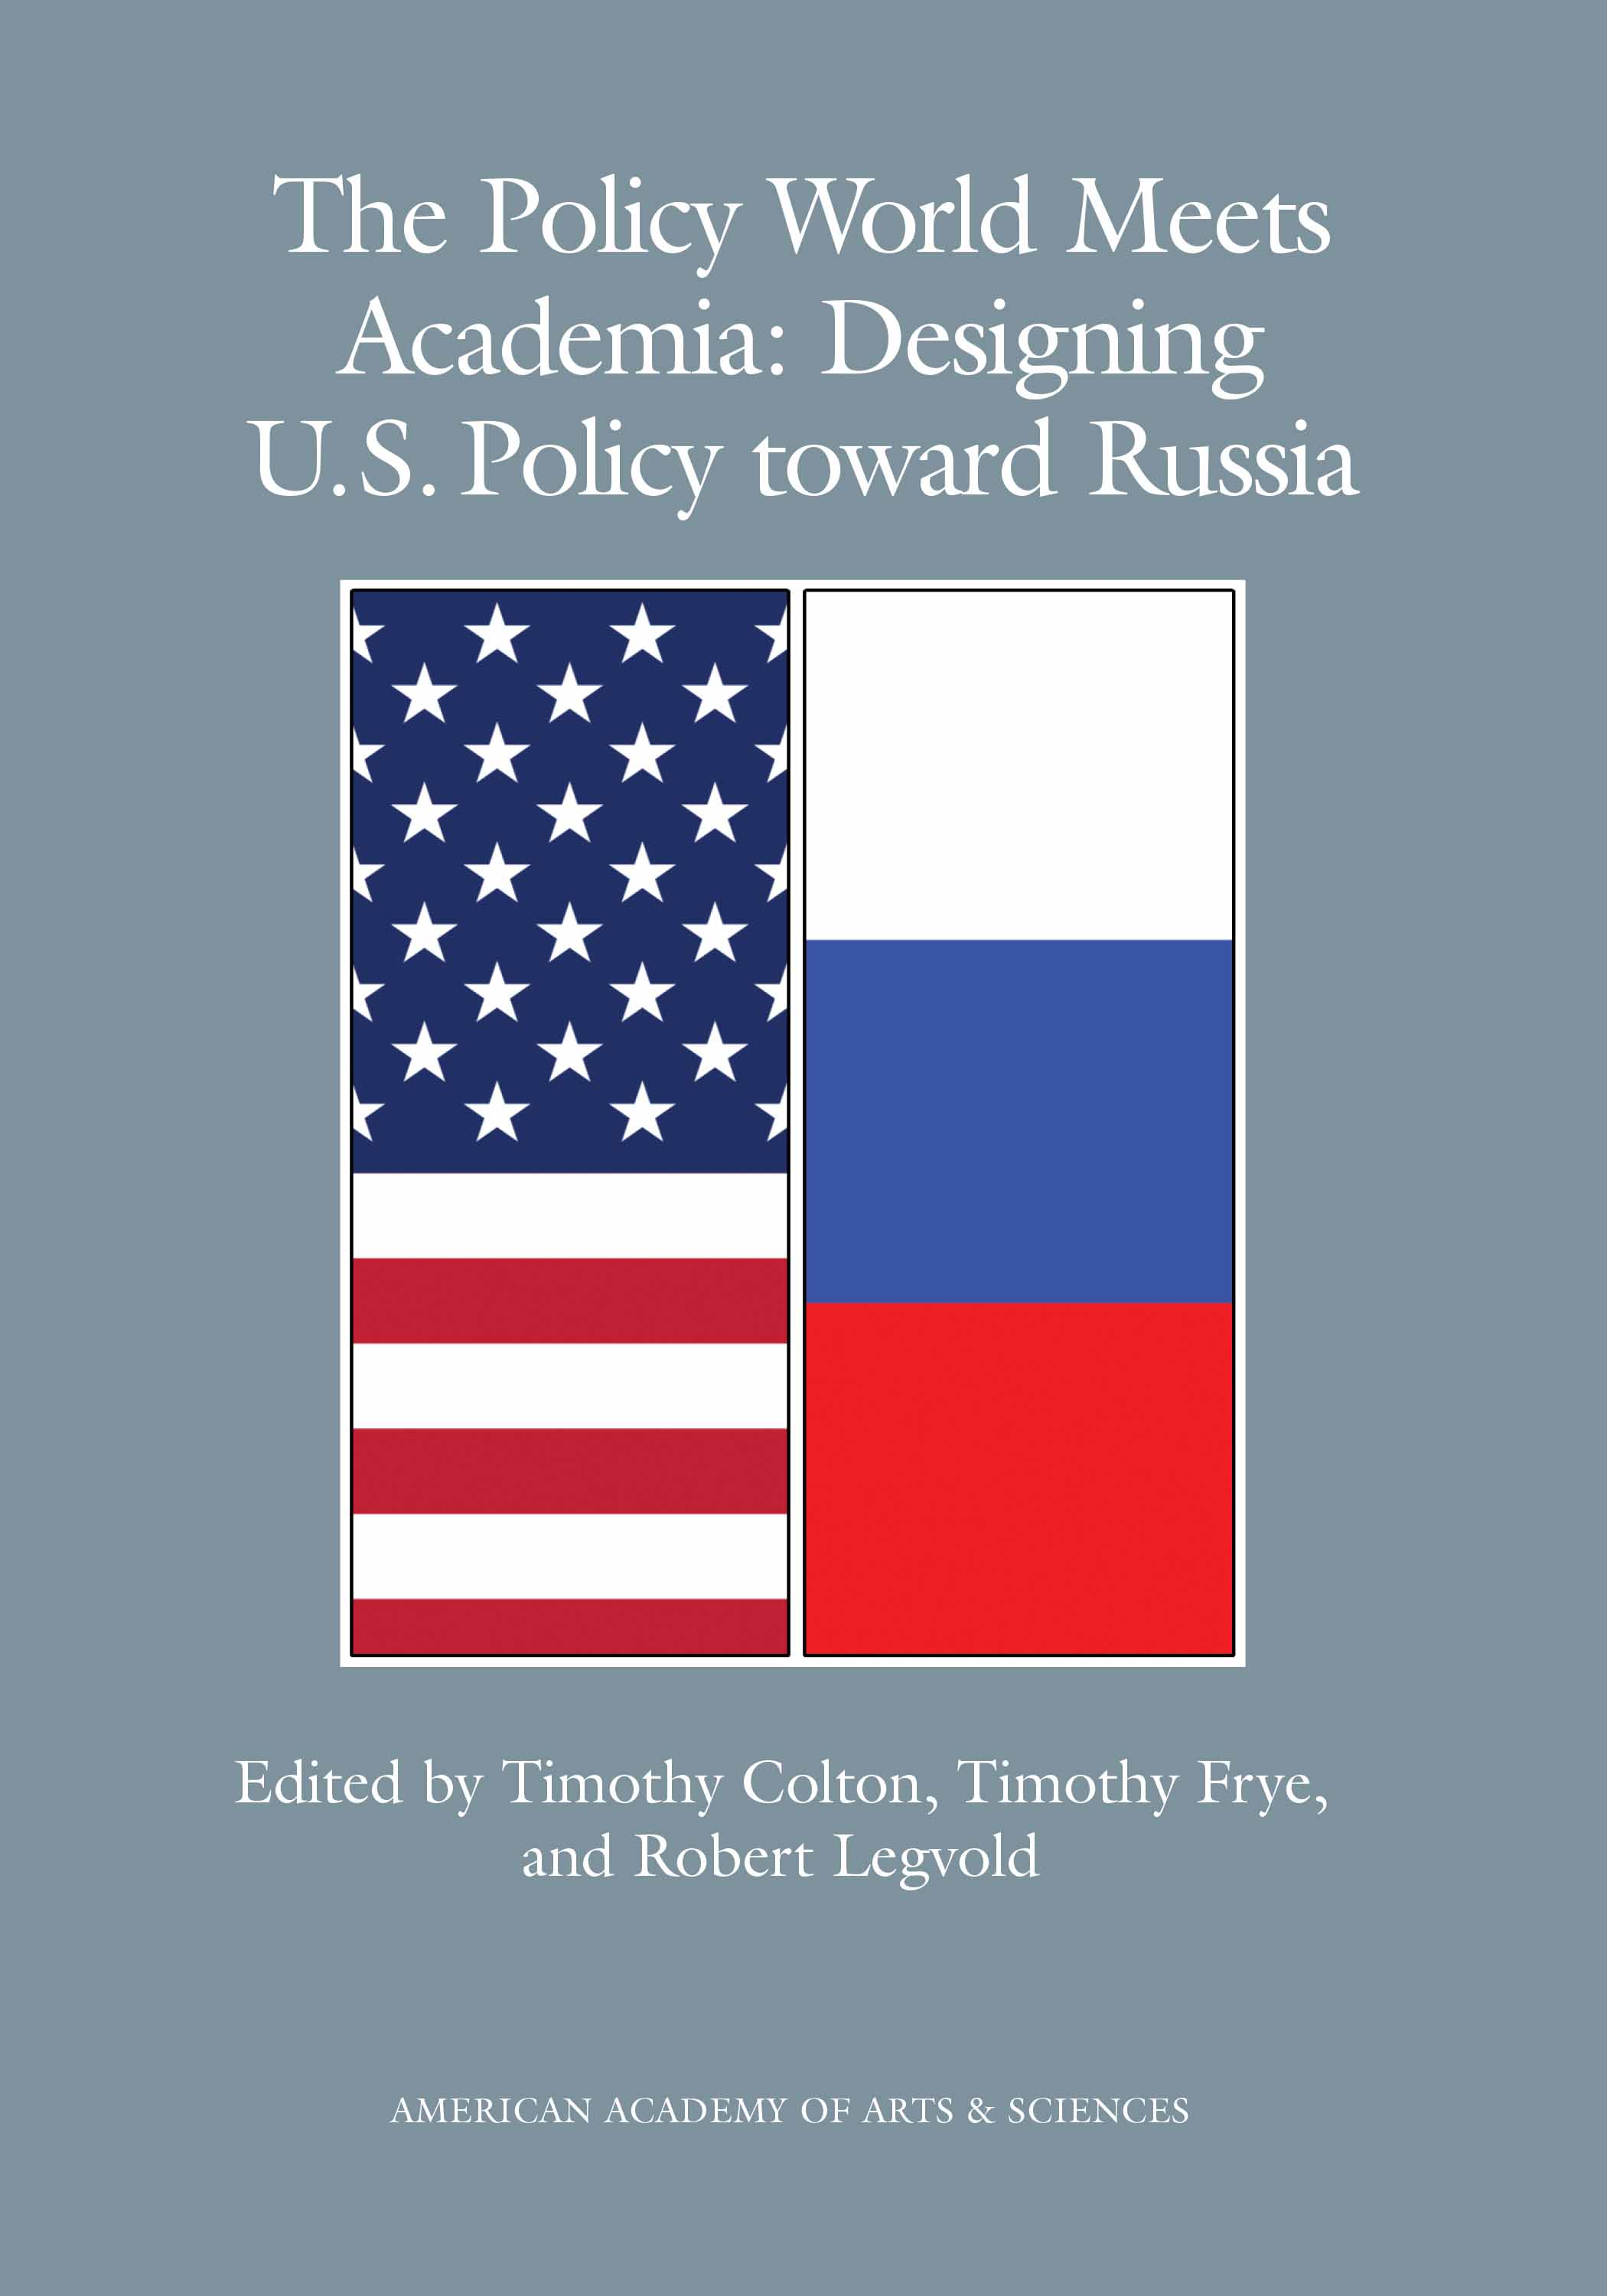 book cover_the policy world meets academia - designing US policy toward Russia.jpg